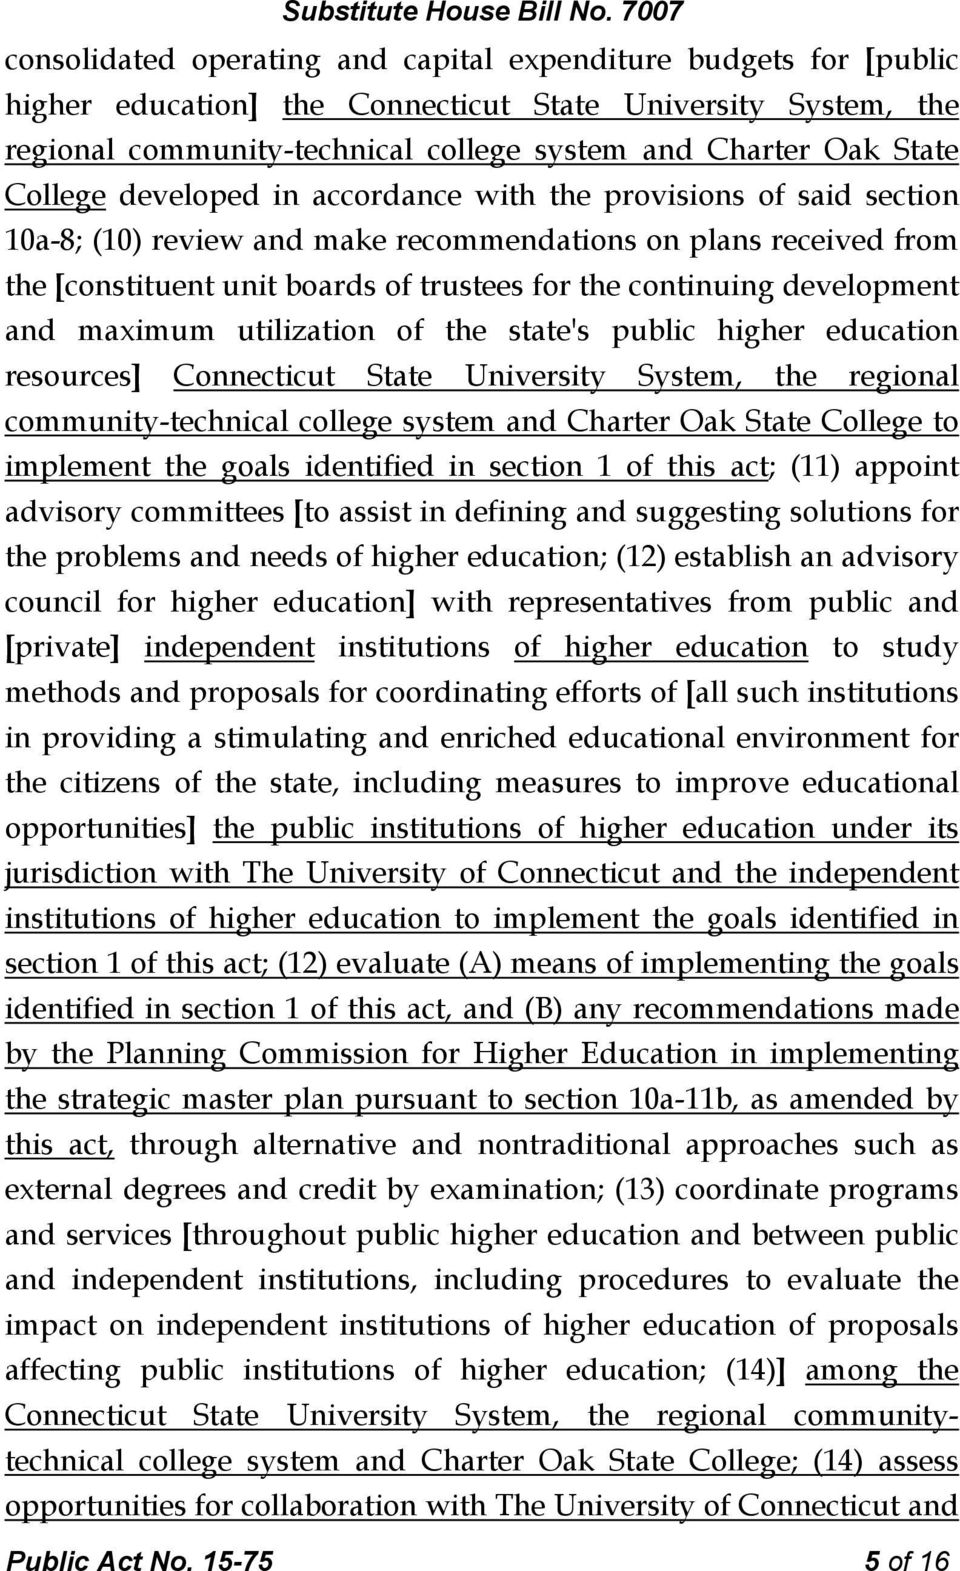 development and maximum utilization of the state's public higher education resources] Connecticut State University System, the regional community-technical college system and Charter Oak State